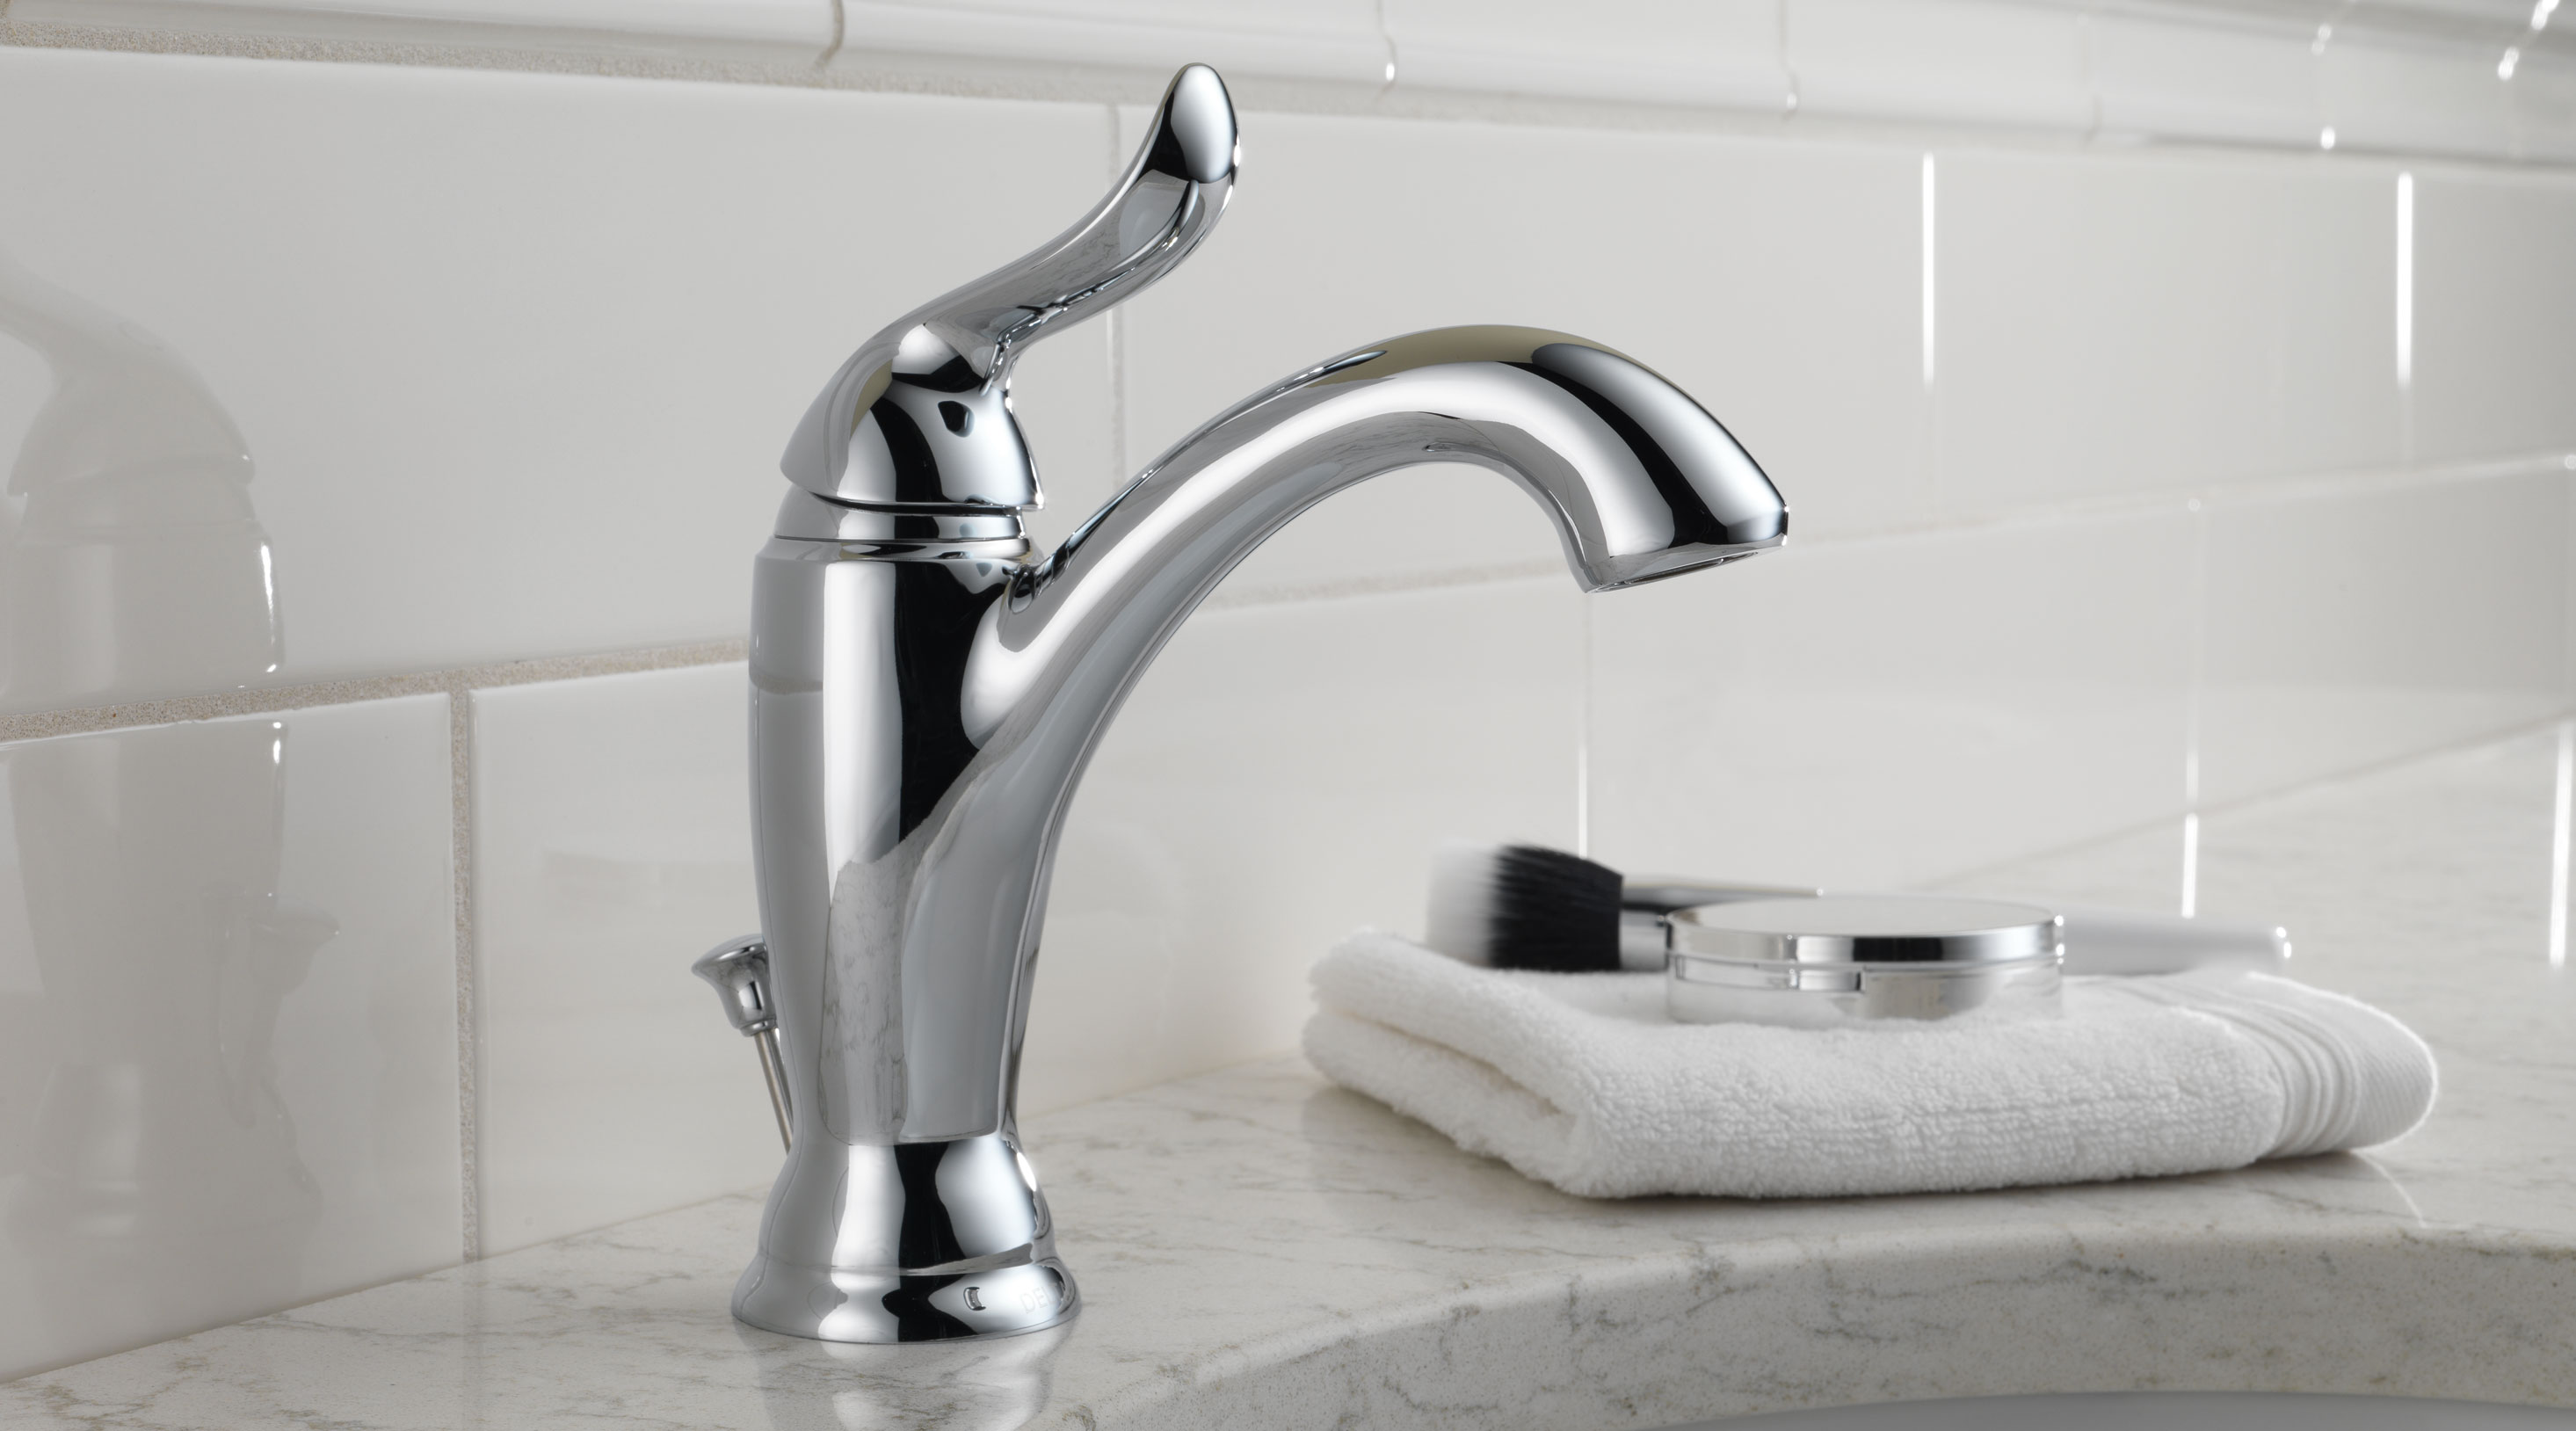 Picking The Perfect Bathroom Faucet Best Bathroom Faucets - Best bathroom faucets to buy for bathroom decor ideas